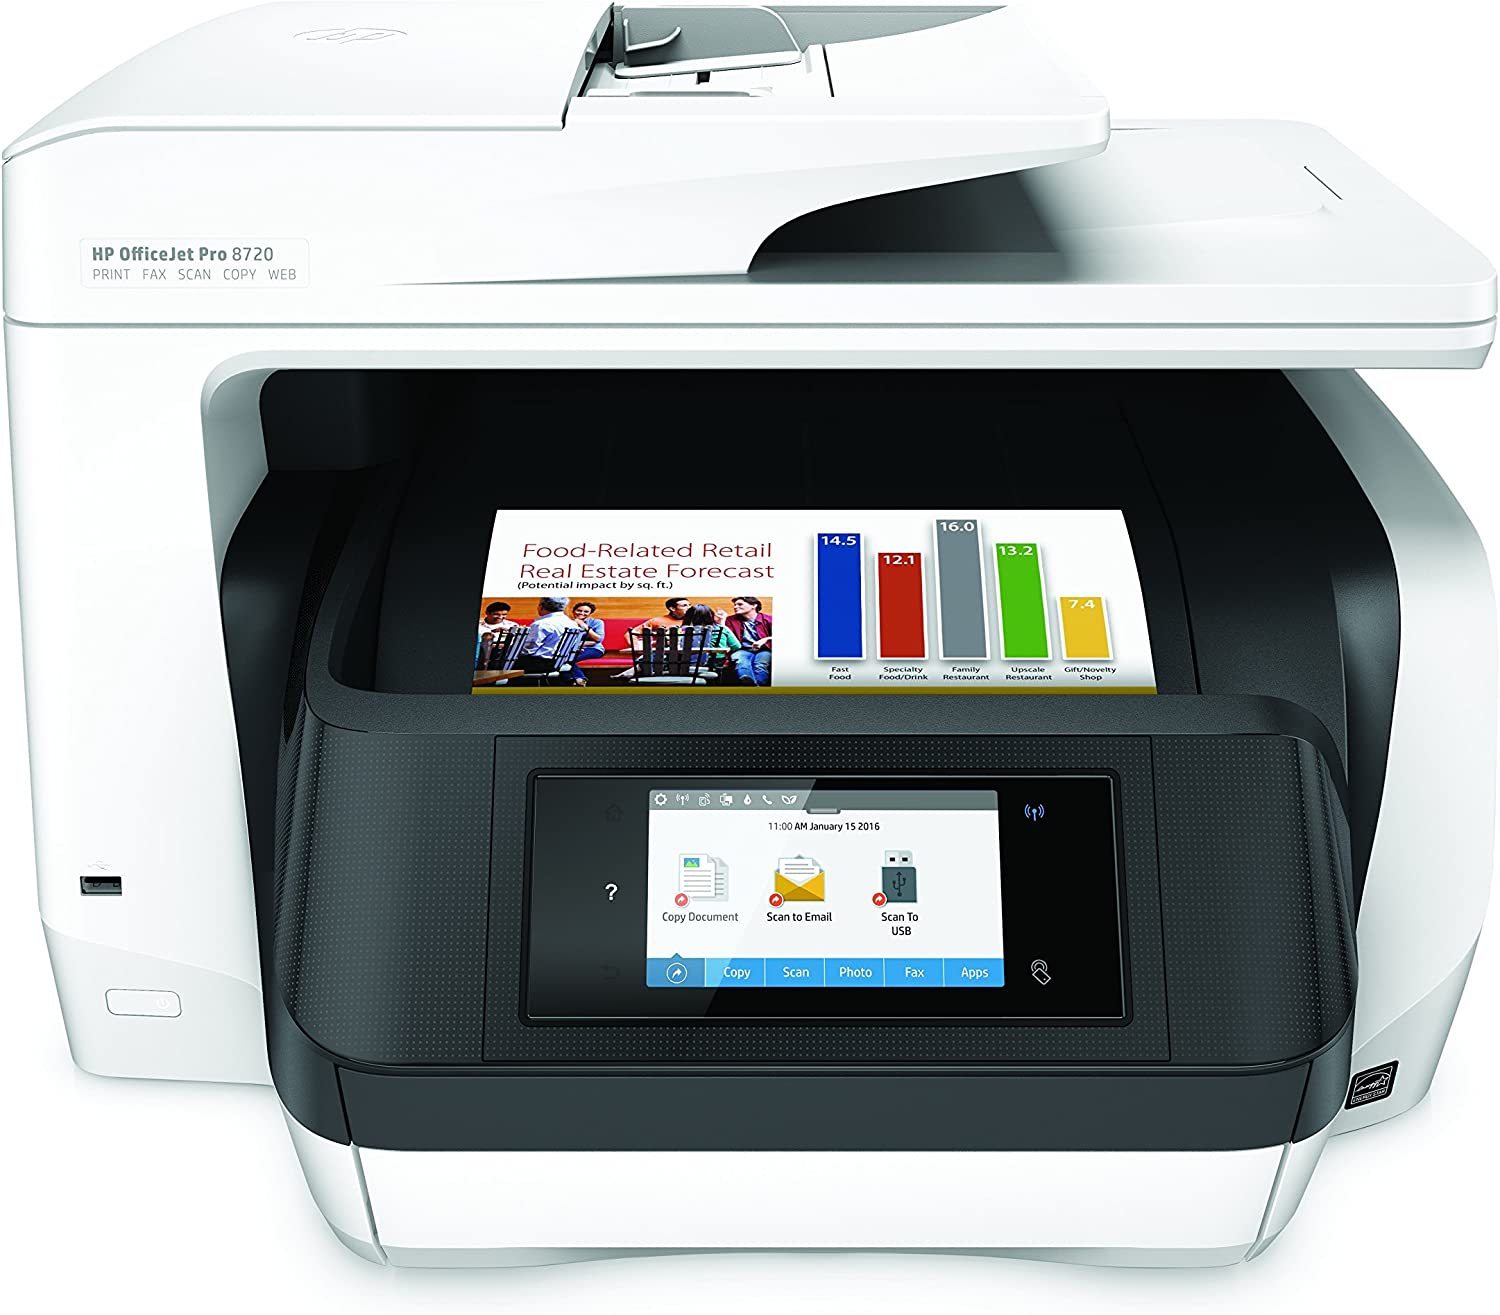 HP OfficeJet Pro 8720 All-in-One Wireless Printer with Mobile Printing, HP Instant Ink & Amazon Dash Replenishment ready - White (M9L75A) (Renewed)